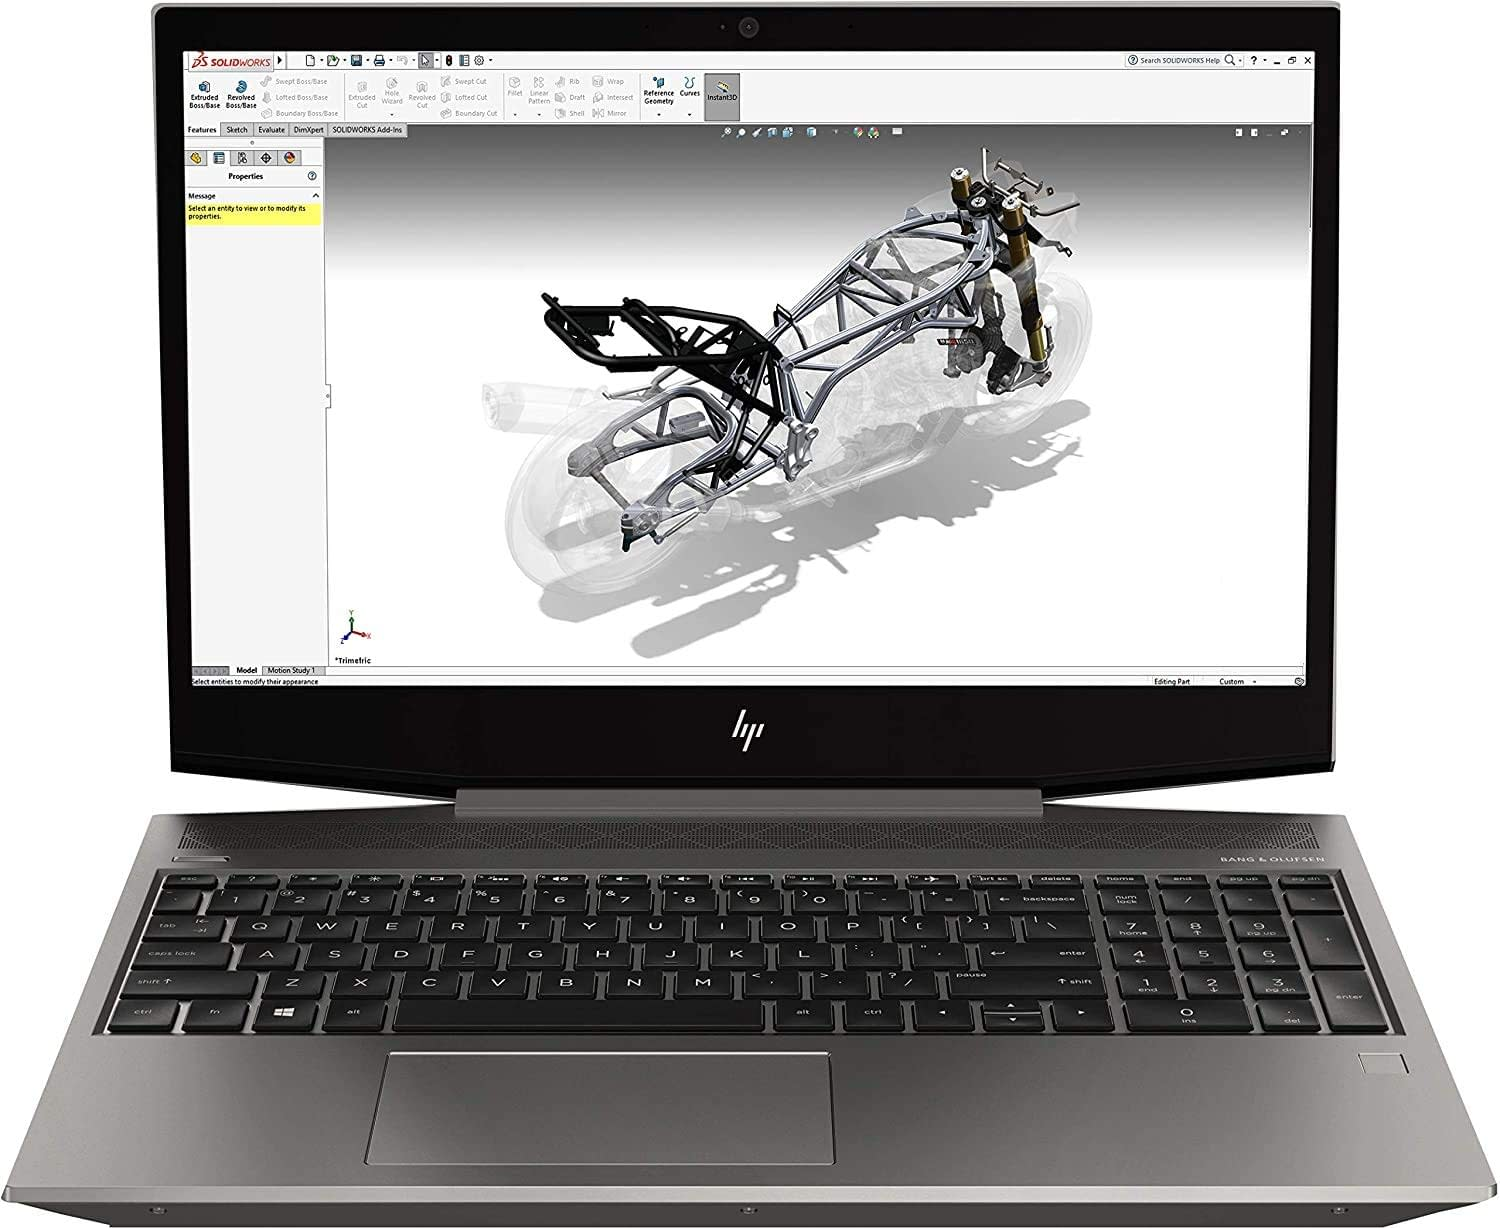 HP Zbook best Video editing and Graphics Design laptop